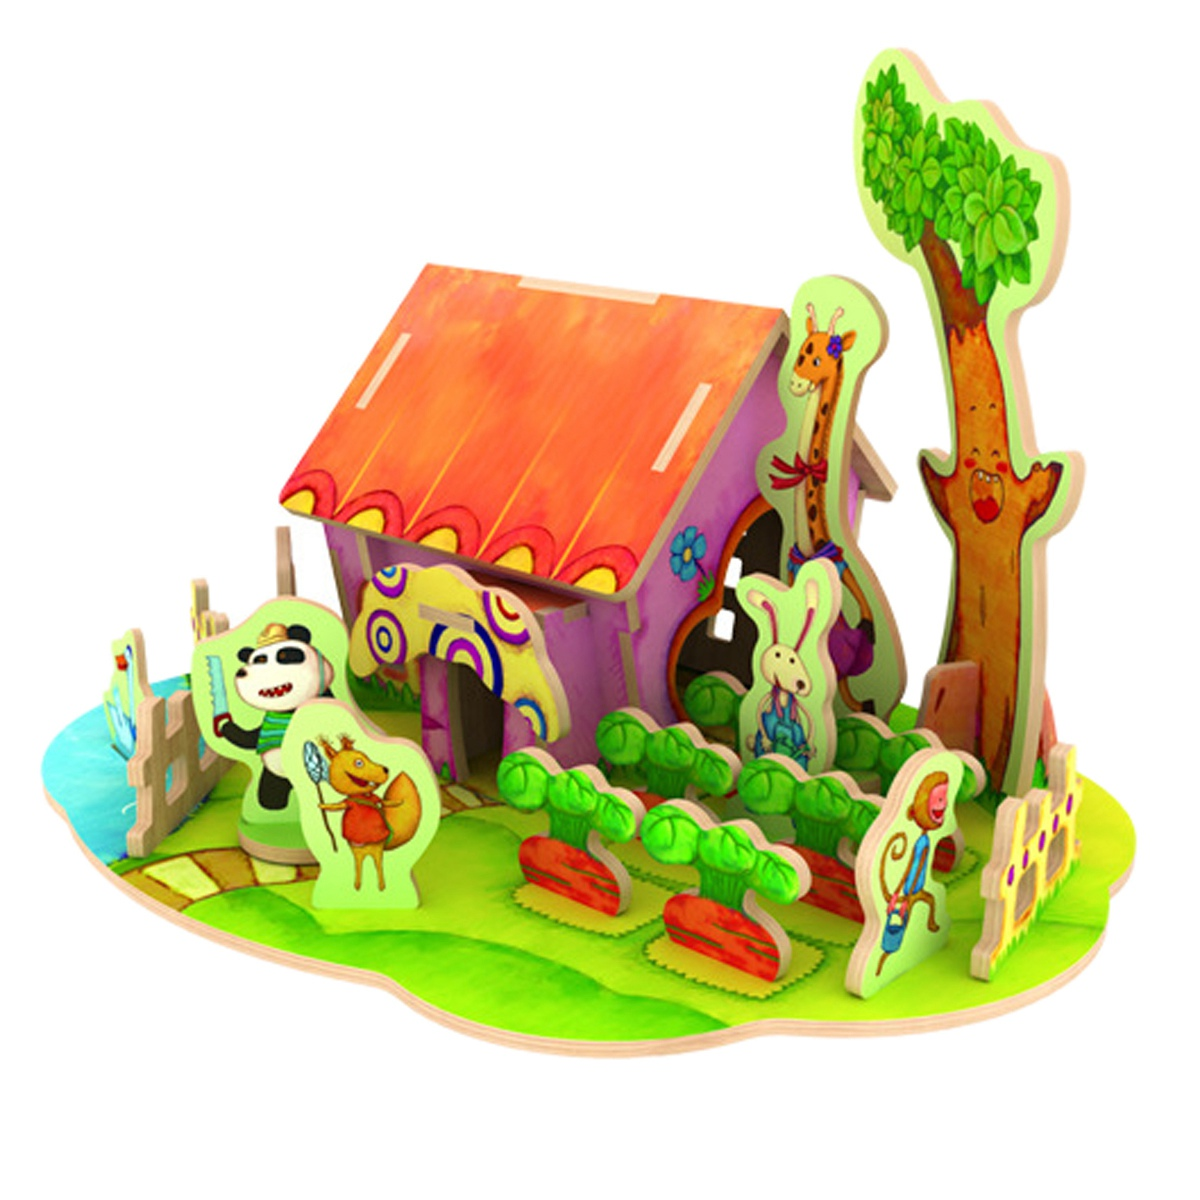 Robotime 4D Wood Jigsaw Puzzle DIY Model Forest Cabin(China (Mainland))